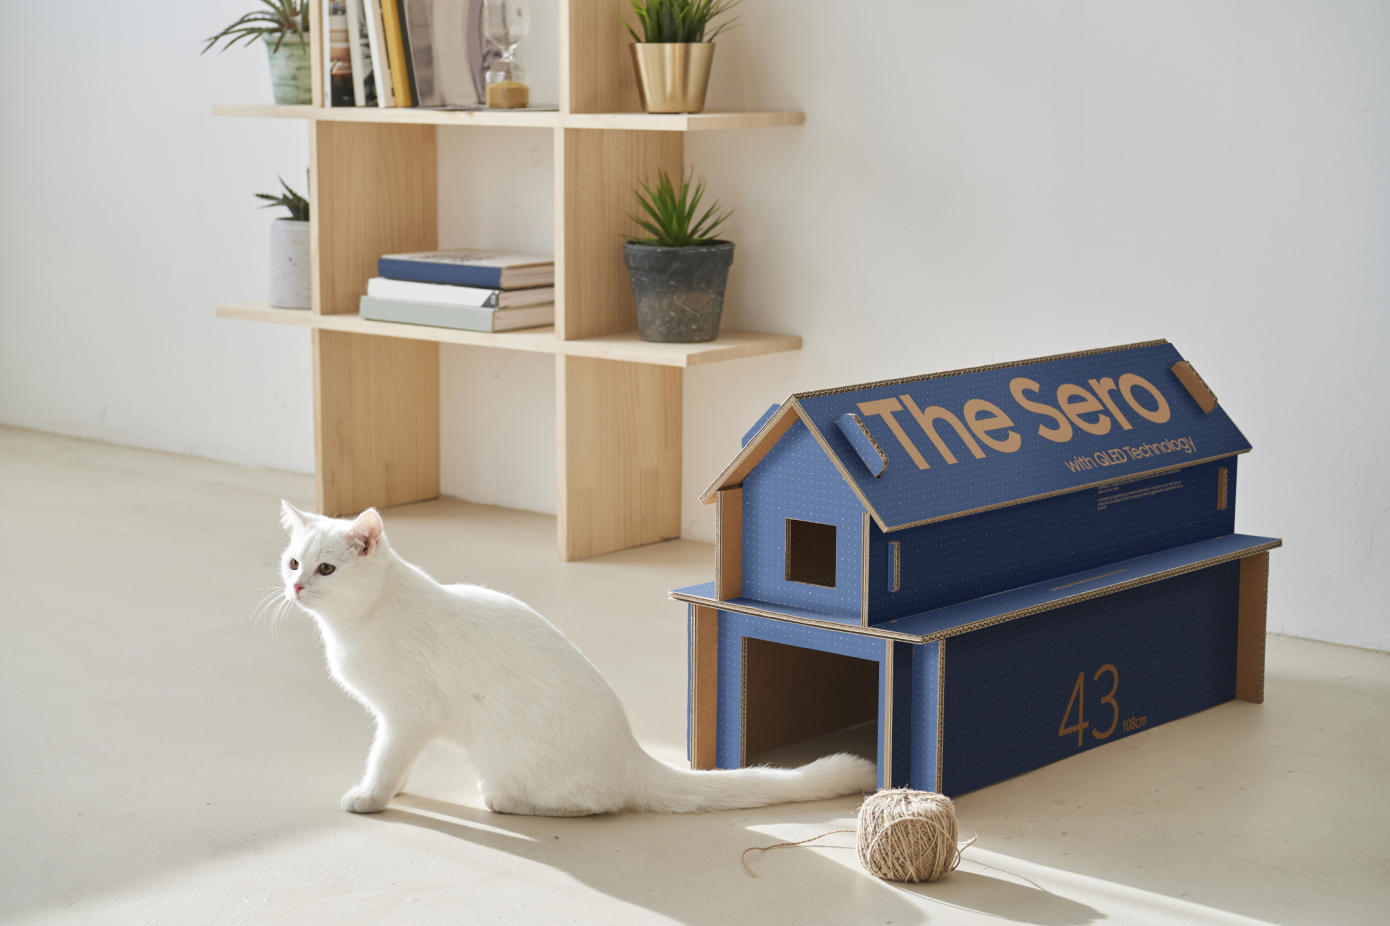 Ecommerce Packaging converts into cat house from Samsung